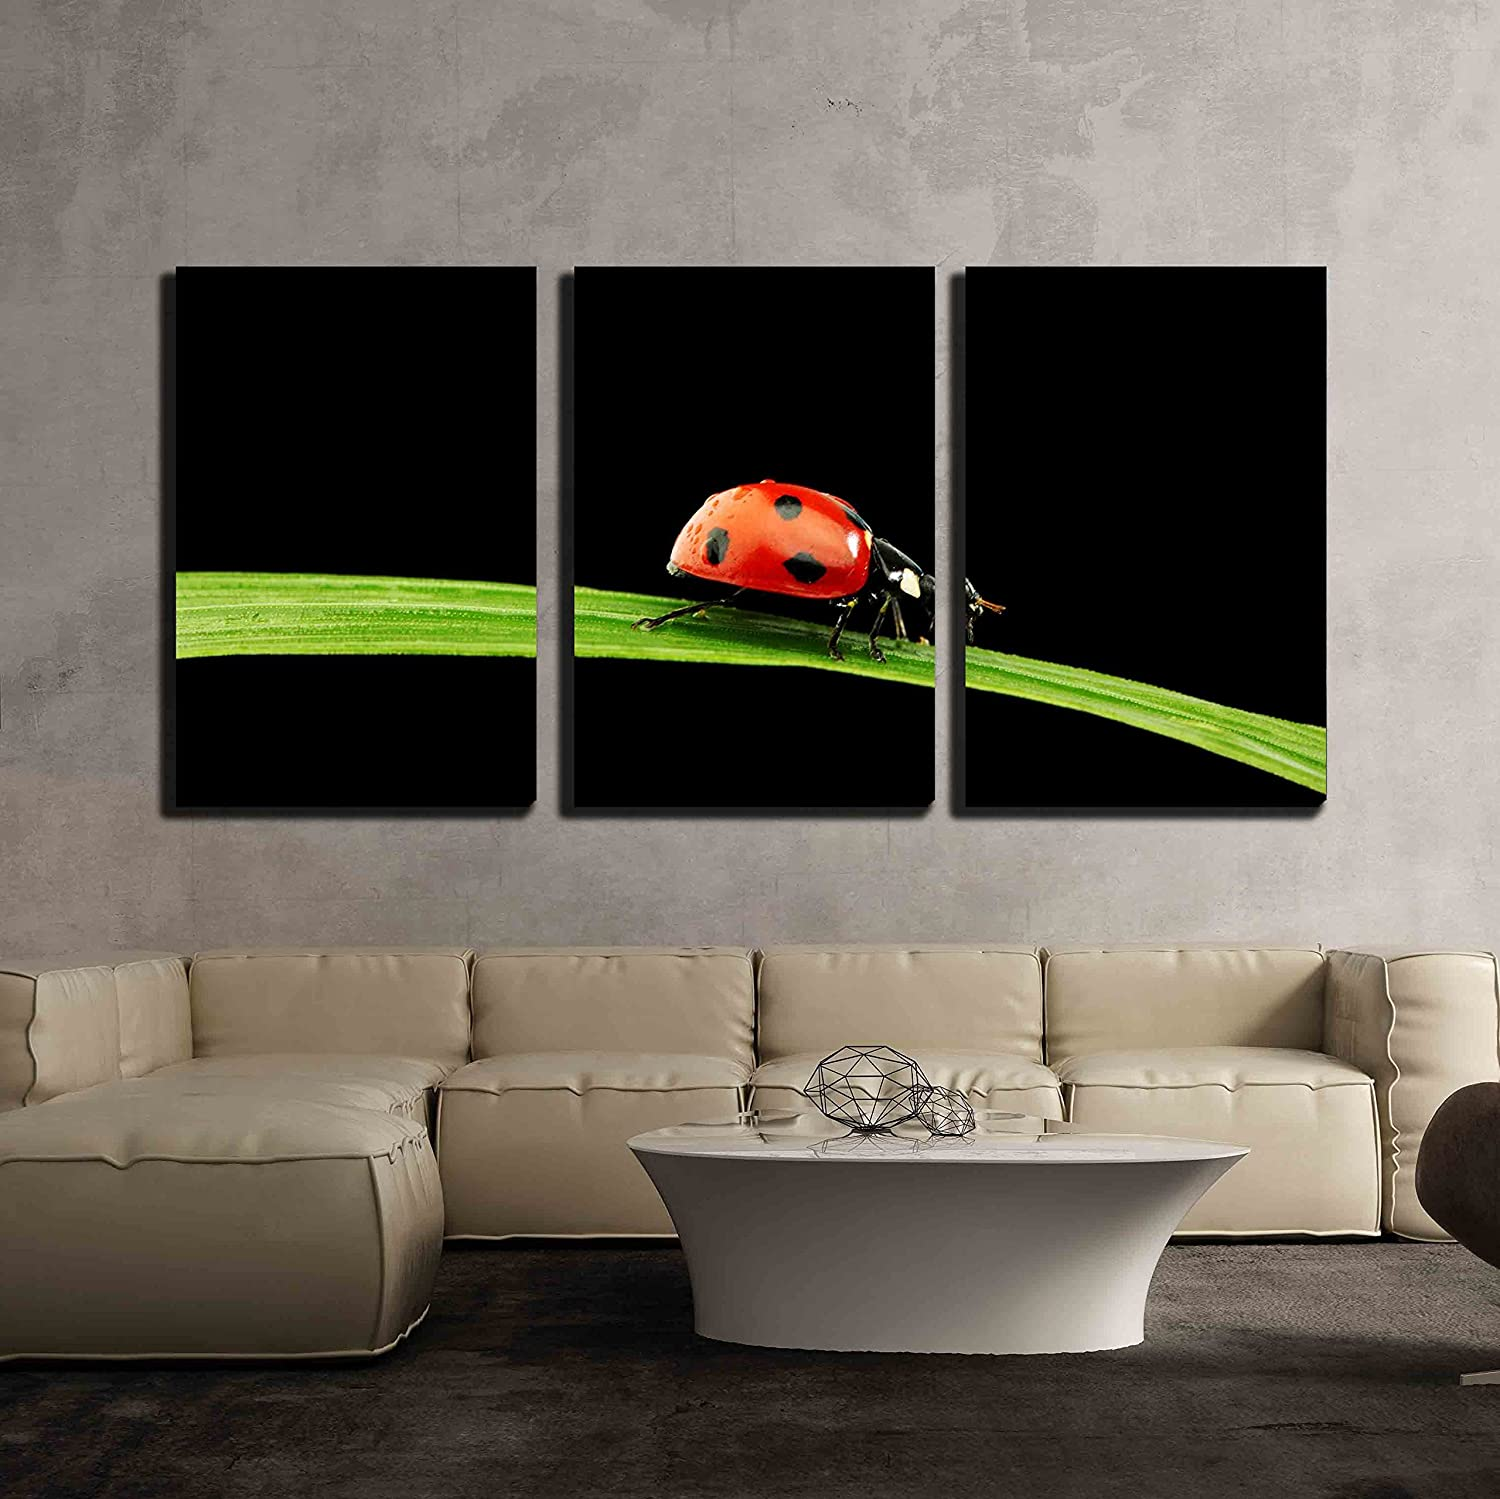 wall26 - 3 Piece Canvas Wall Art - Ladybug on Grass Isolated Black Background - Modern Home Art Stretched and Framed Ready to Hang - 24